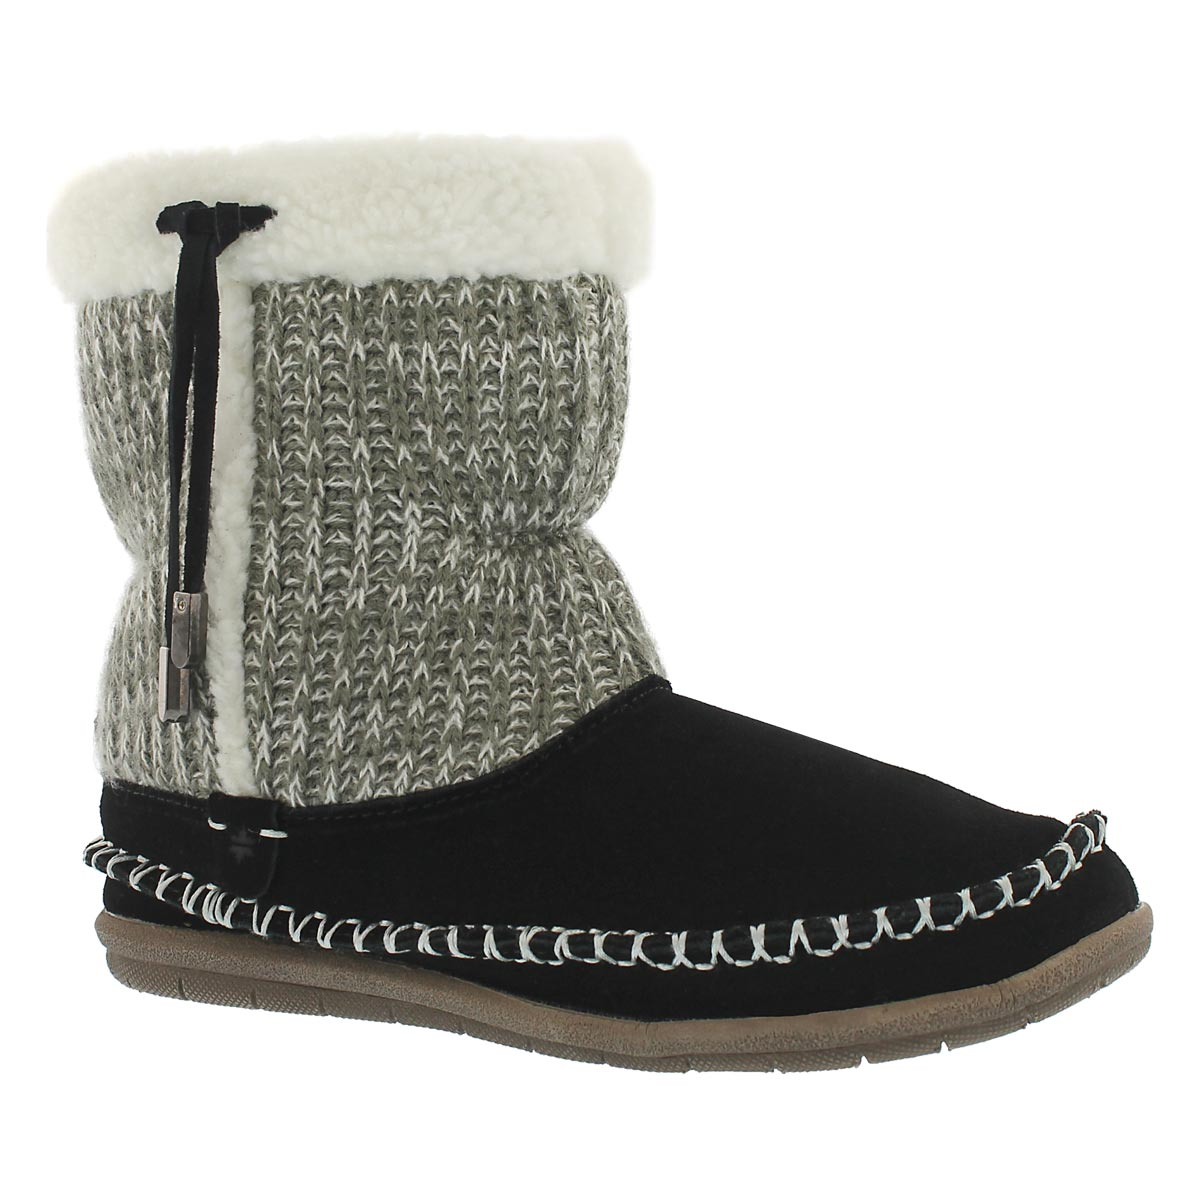 Women's ALANA black bootie slippers